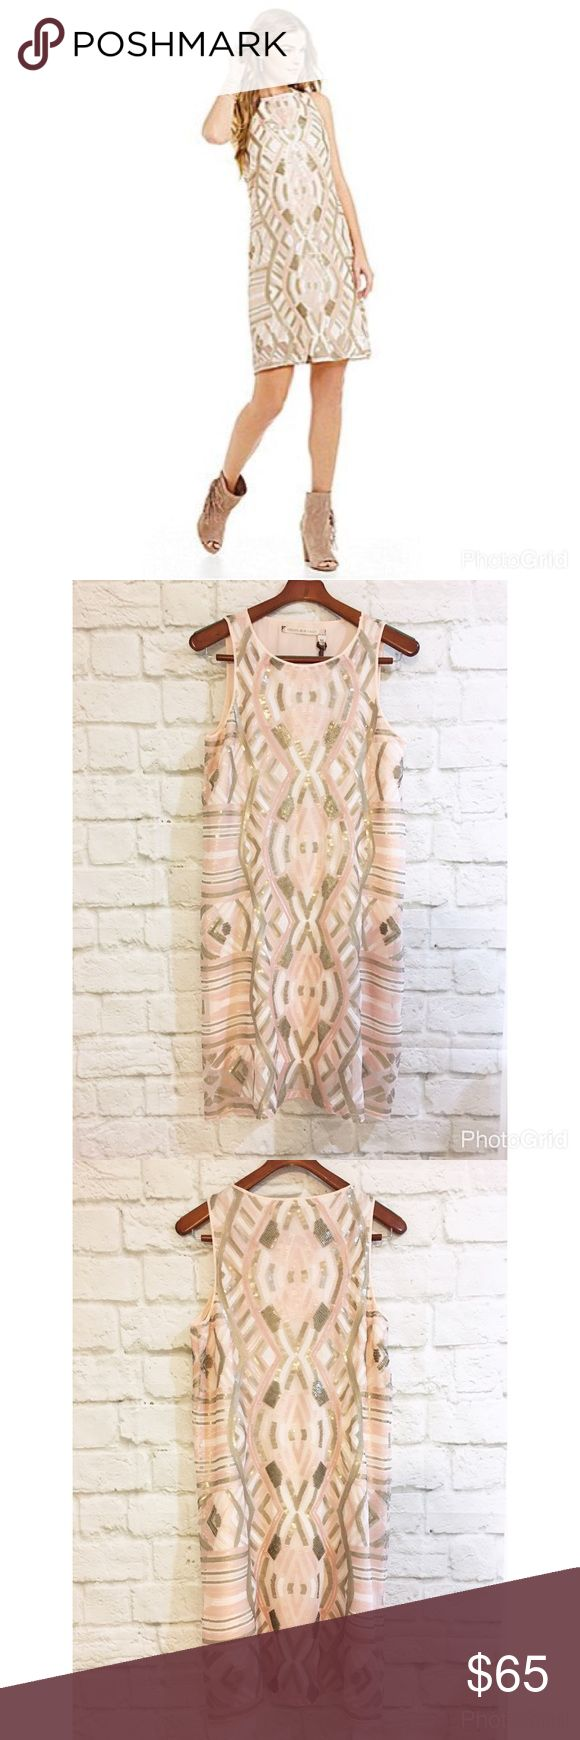 """Chelsea and violet Aztec print sequin dress Beautiful Aztec print sequin dress in pale pink. NEw with tags. Size medium, a-line silhouette. Bust 18"""" length 38"""". Chelsea & Violet Dresses Asymmetrical"""